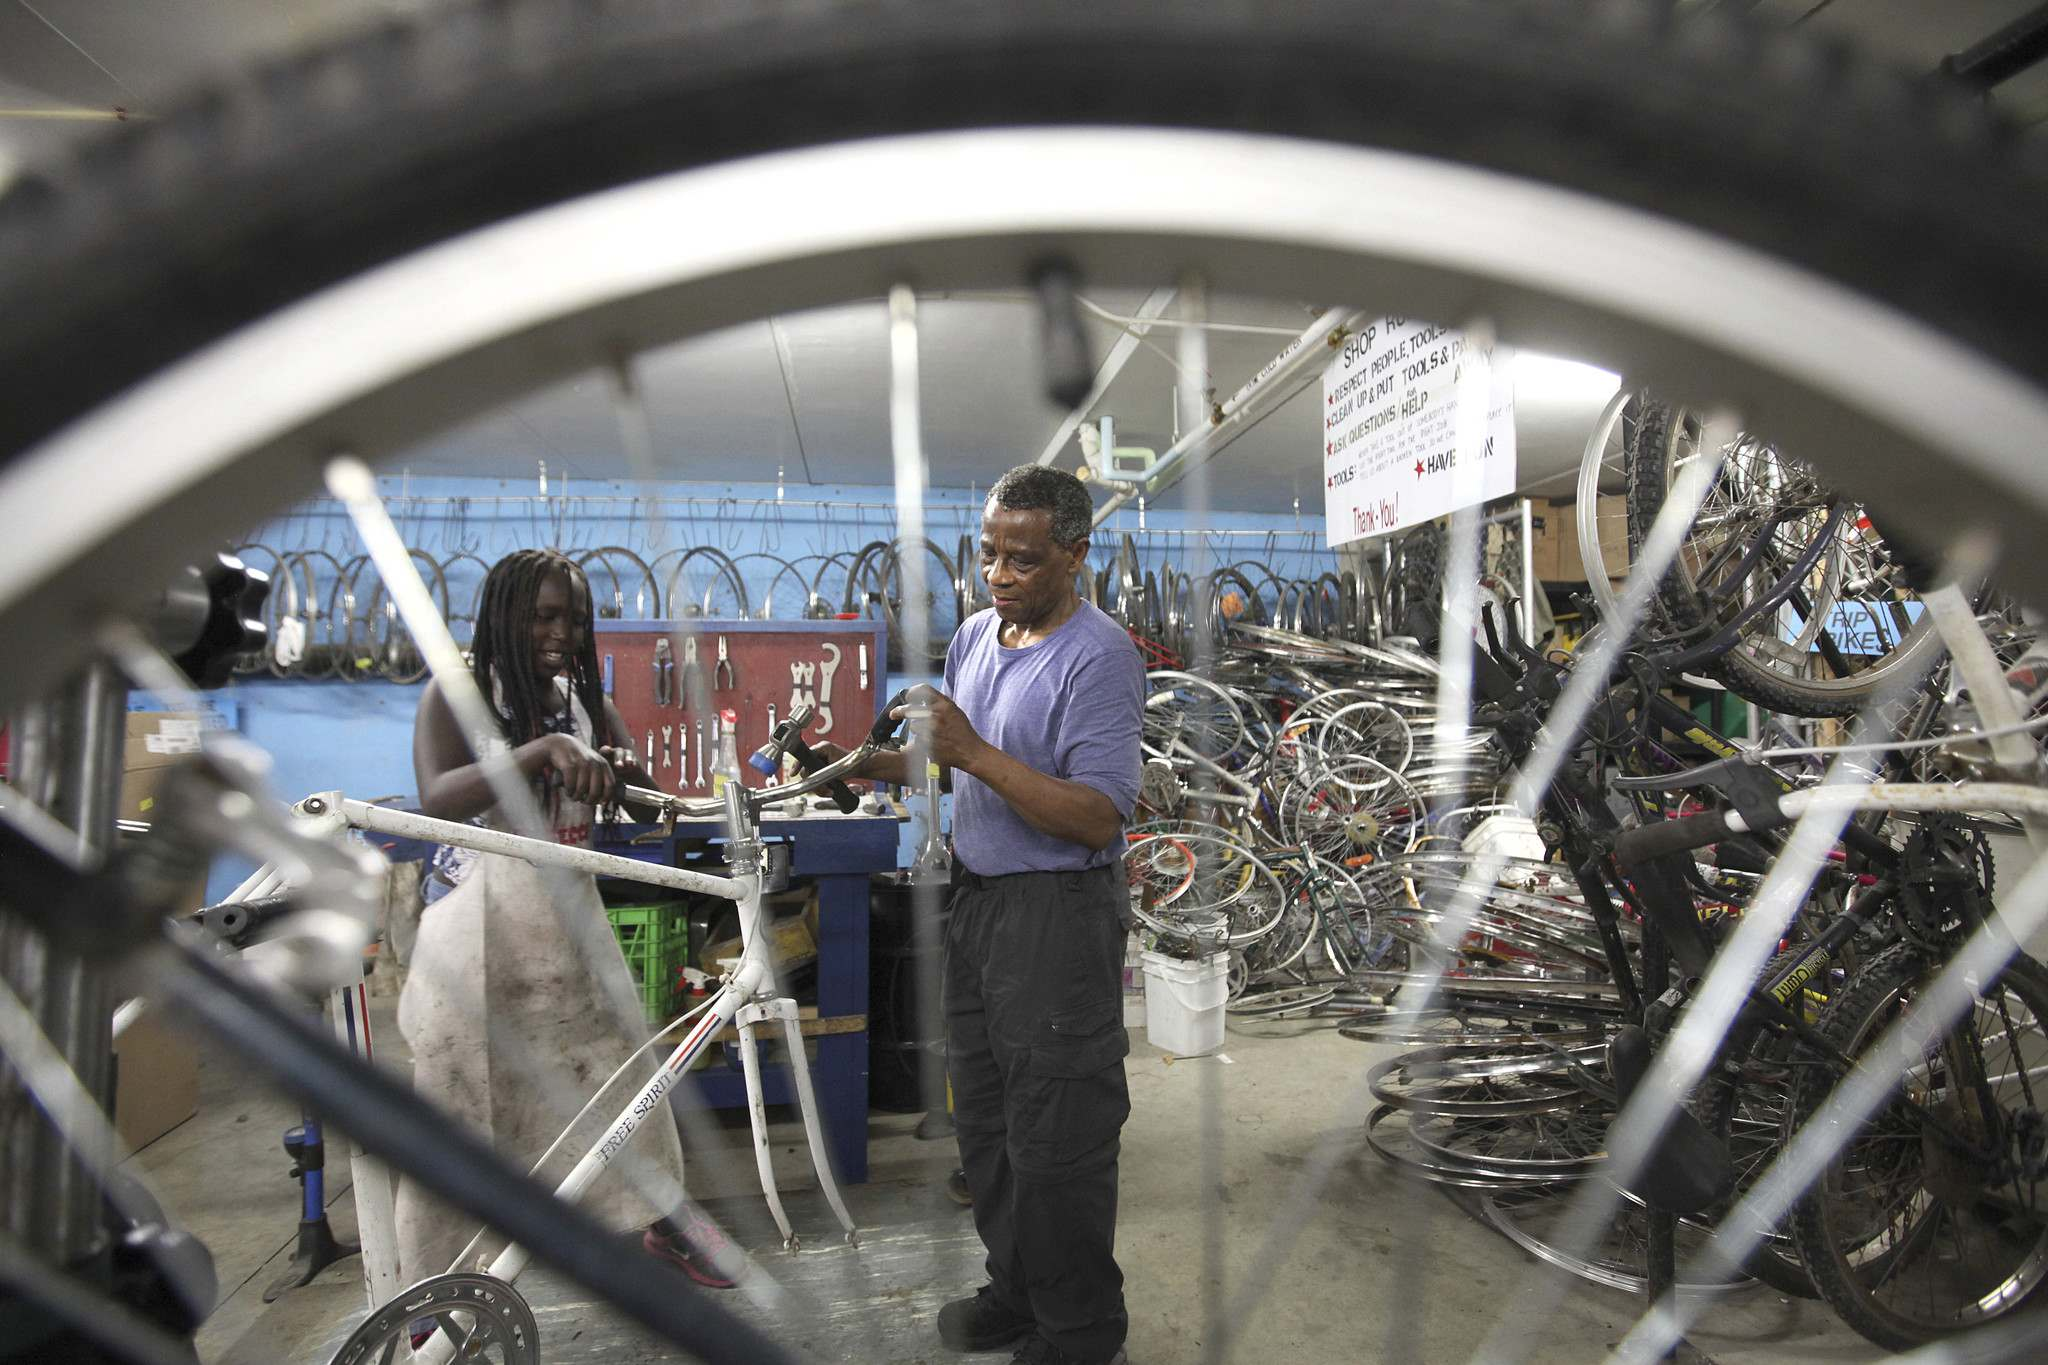 RUTH BONNEVILLE / WINNIPEG FREE PRESS files</p><p>WRENCH volunteers work to refurbish a bike. WRENCH is holding its Back to School Bike Market at The Forks on Sunday, Sept. 15.</p>